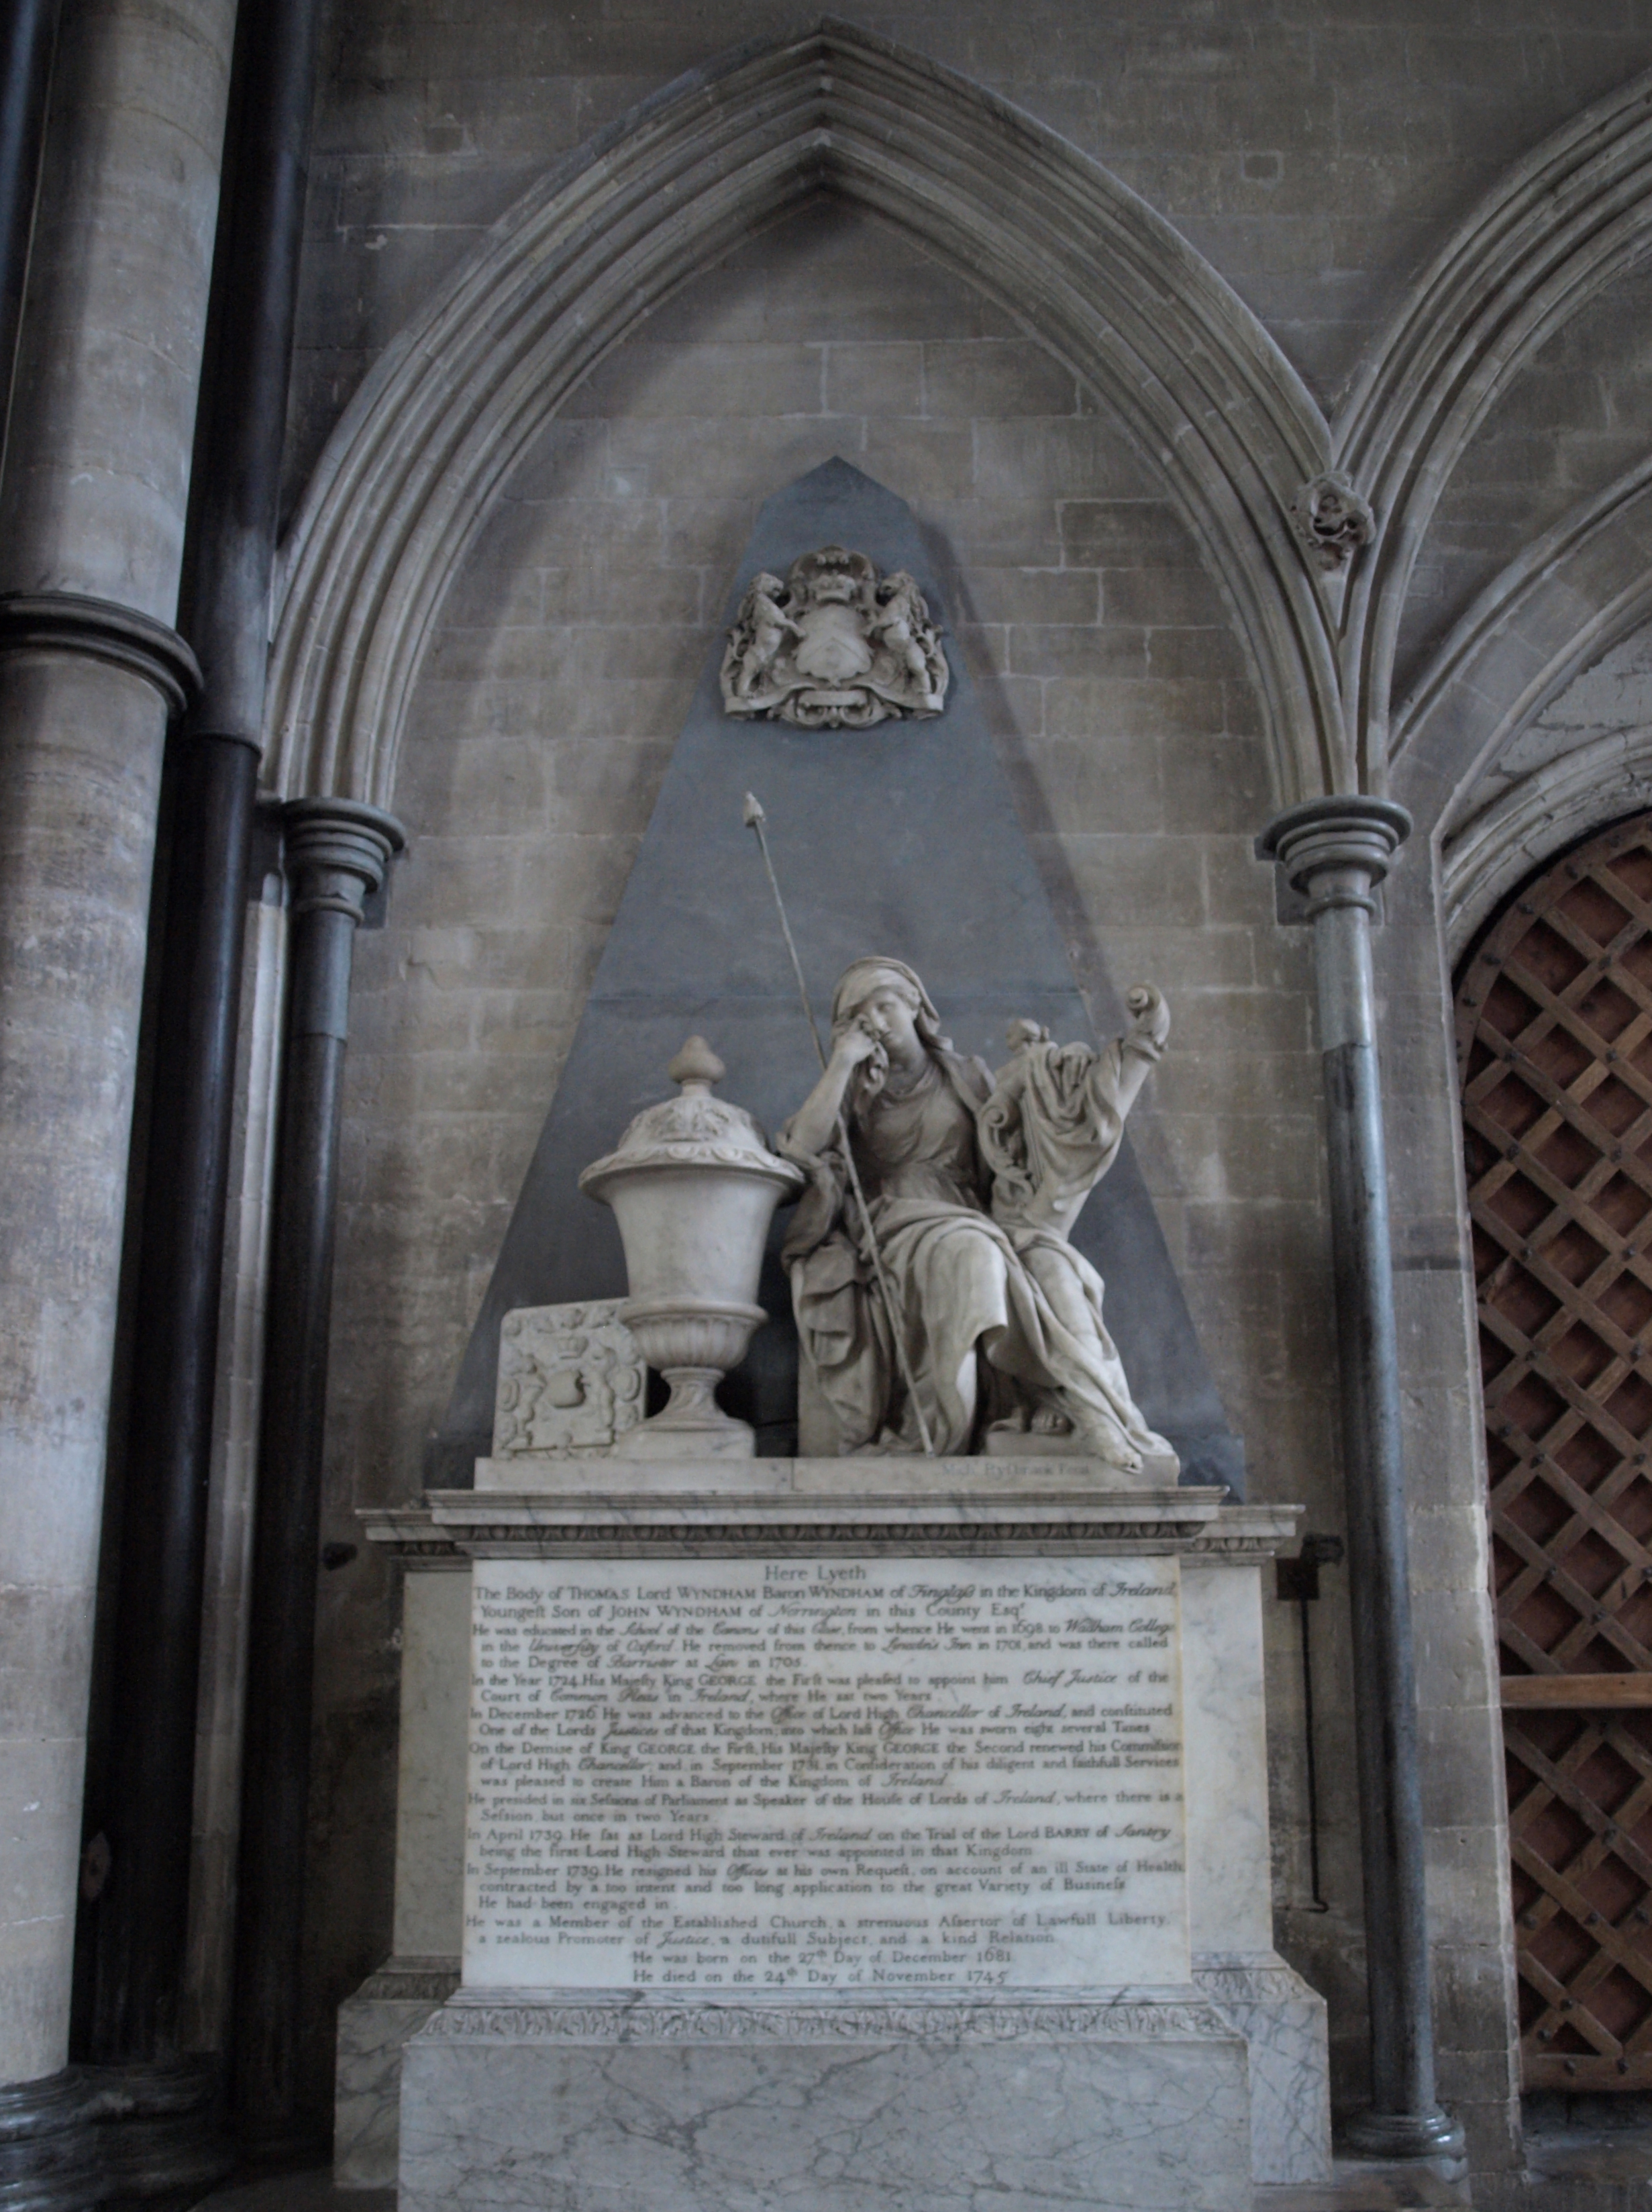 Memorial to Thomas Lord Wyndham, Baron of Wyndham